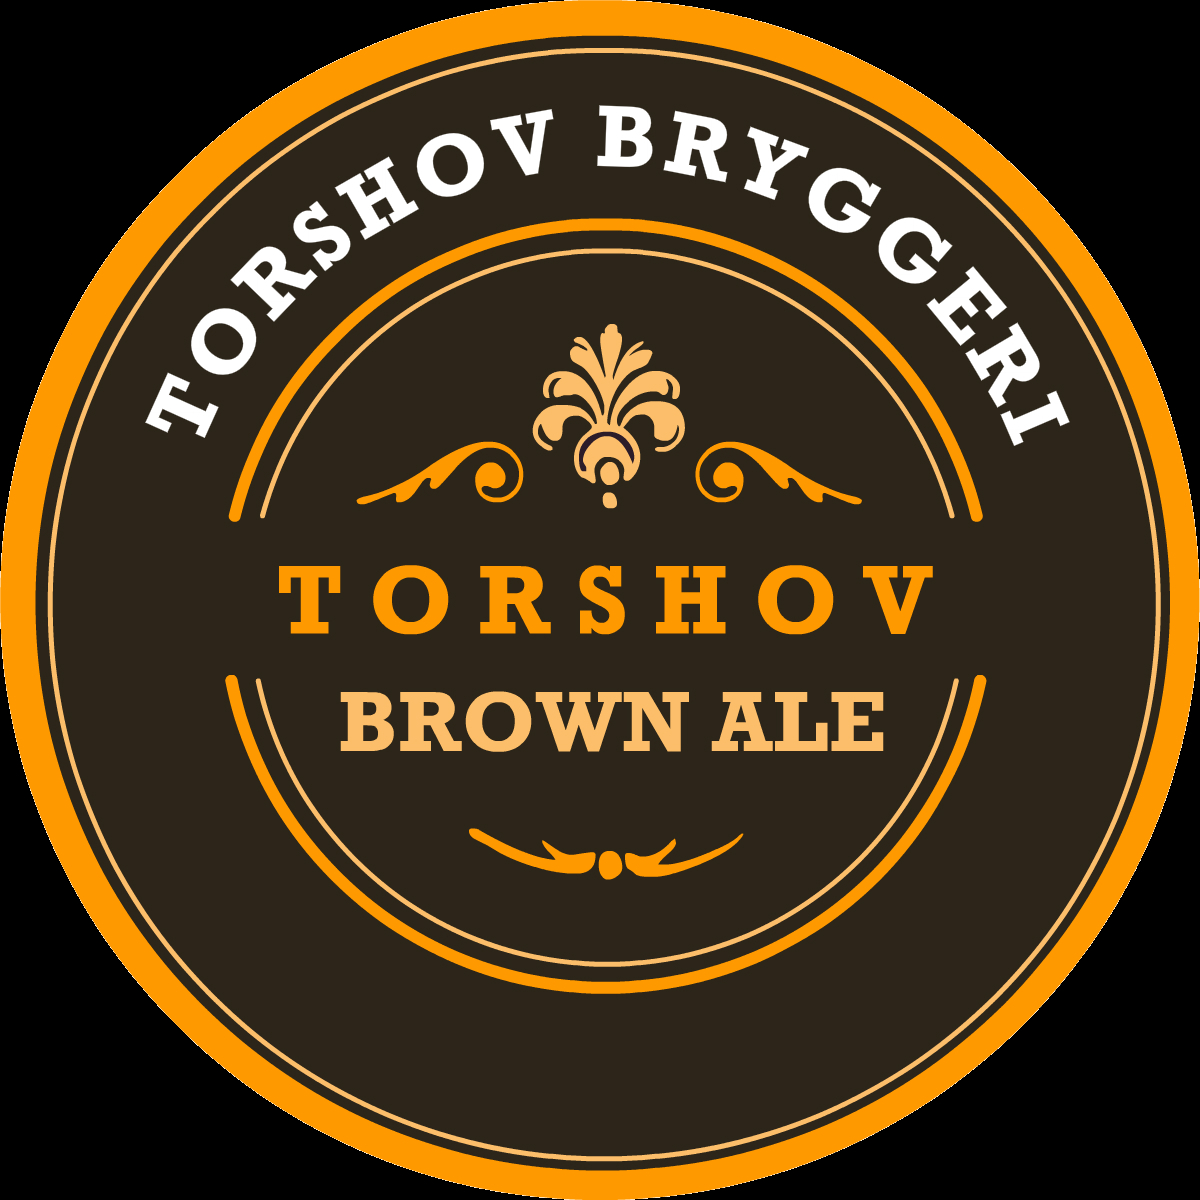 Torshov Brown Ale